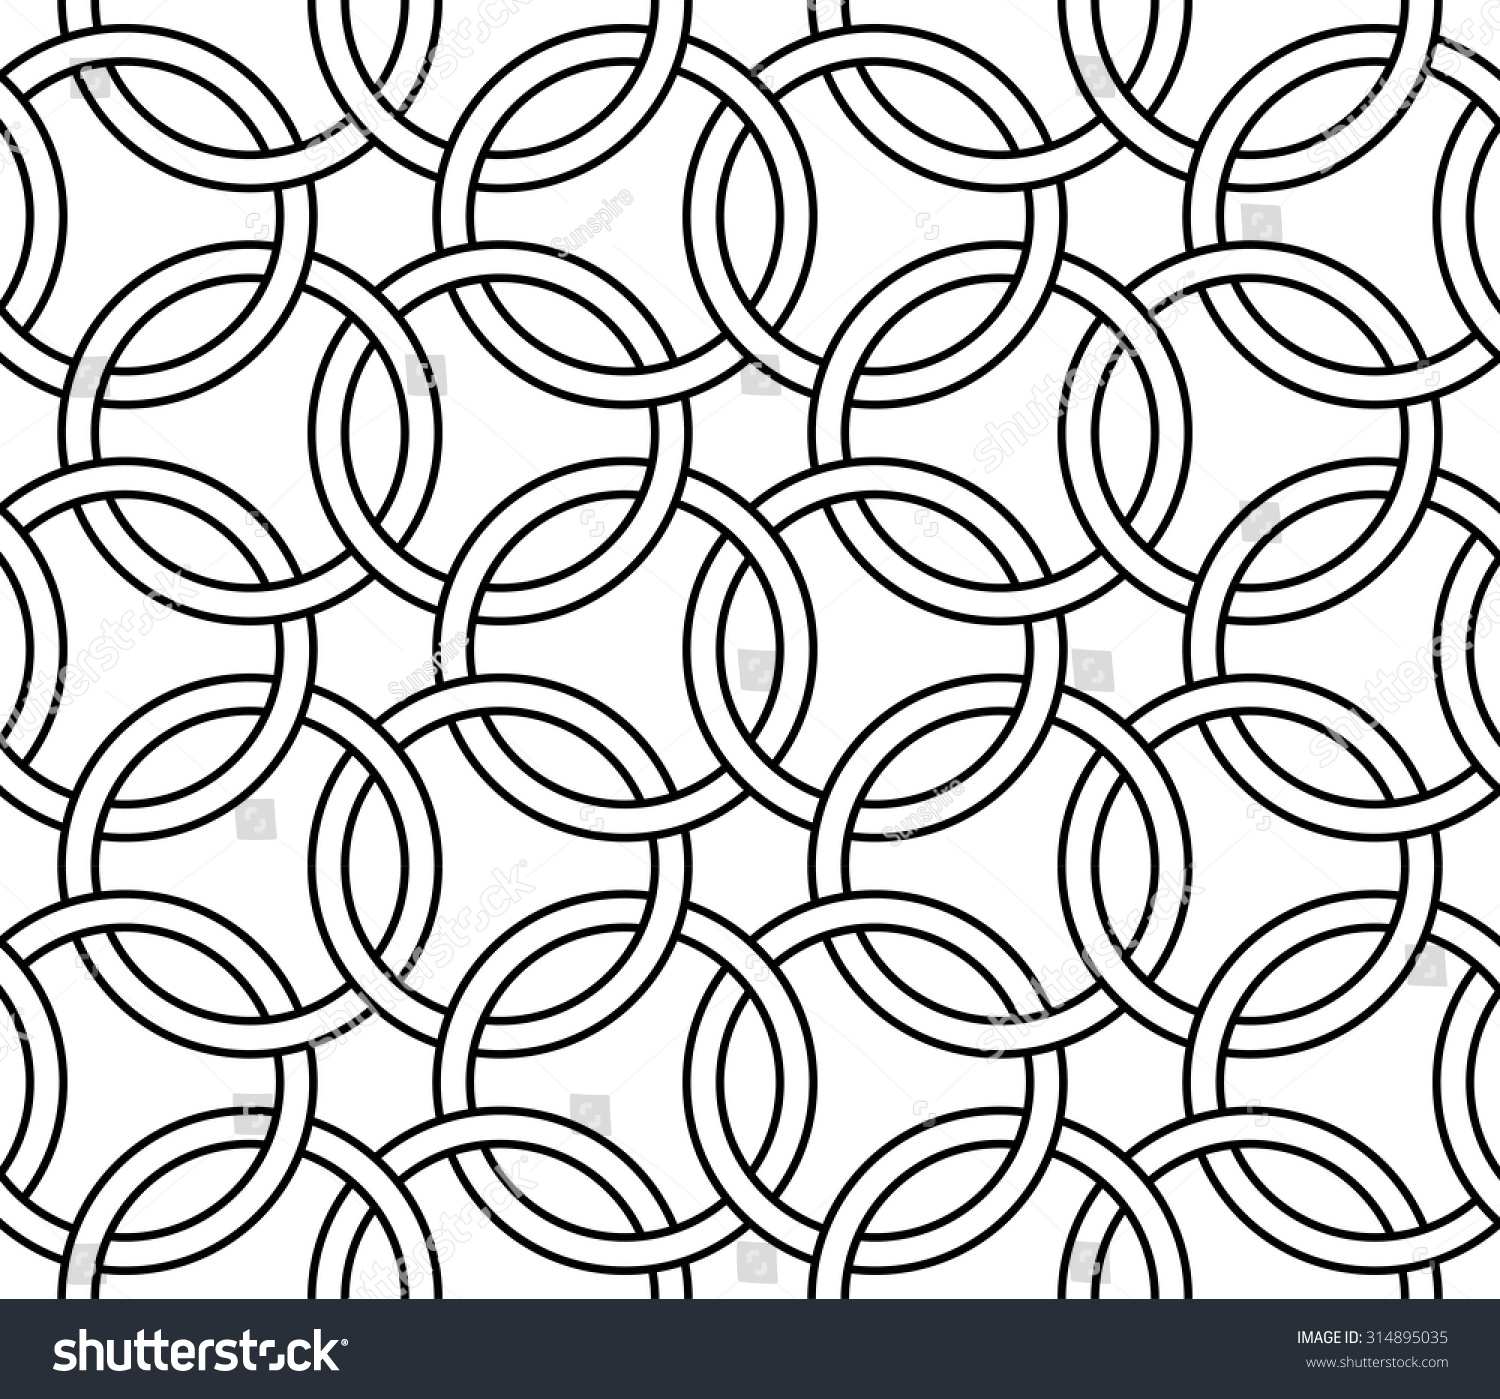 Black and white bed sheets texture - Vector Modern Seamless Pattern Geometry Circles Black And White Textile Print Stylish Background